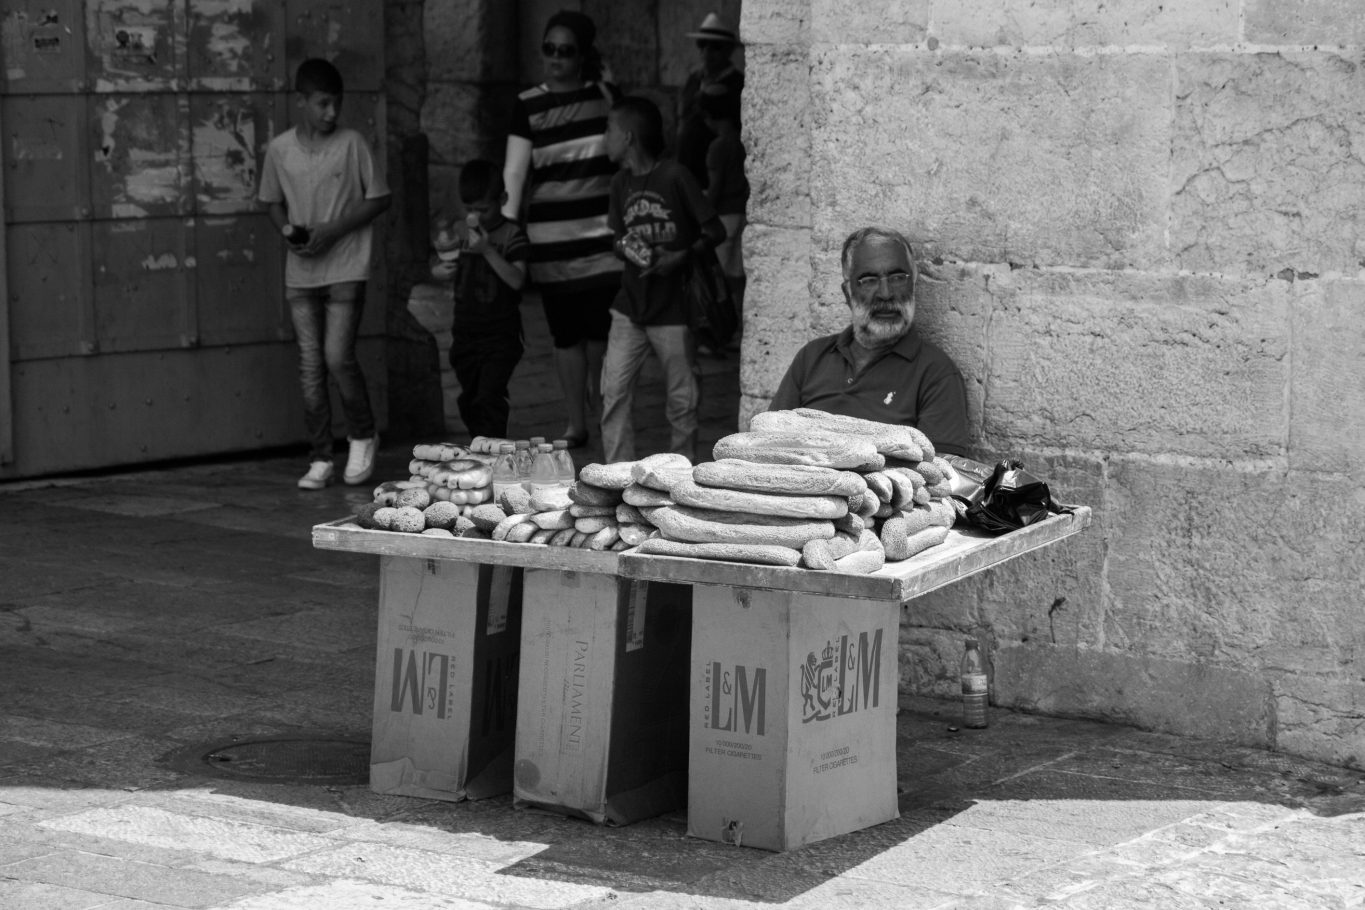 PAINS CHAUDS, JERUSALEM